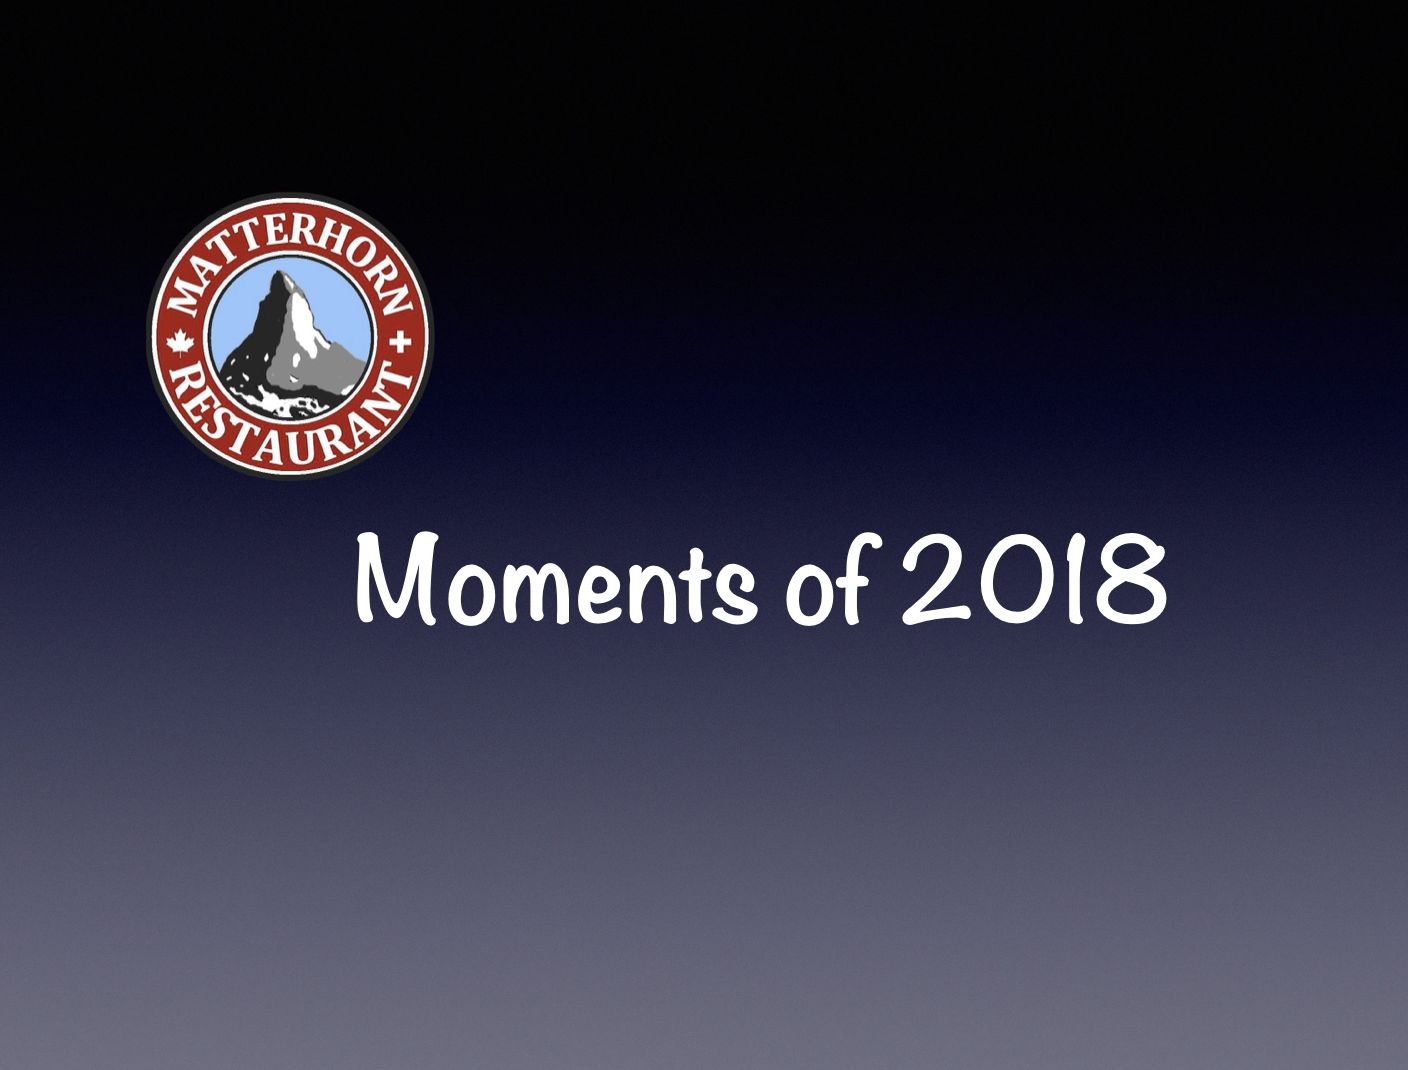 Moments of 2018